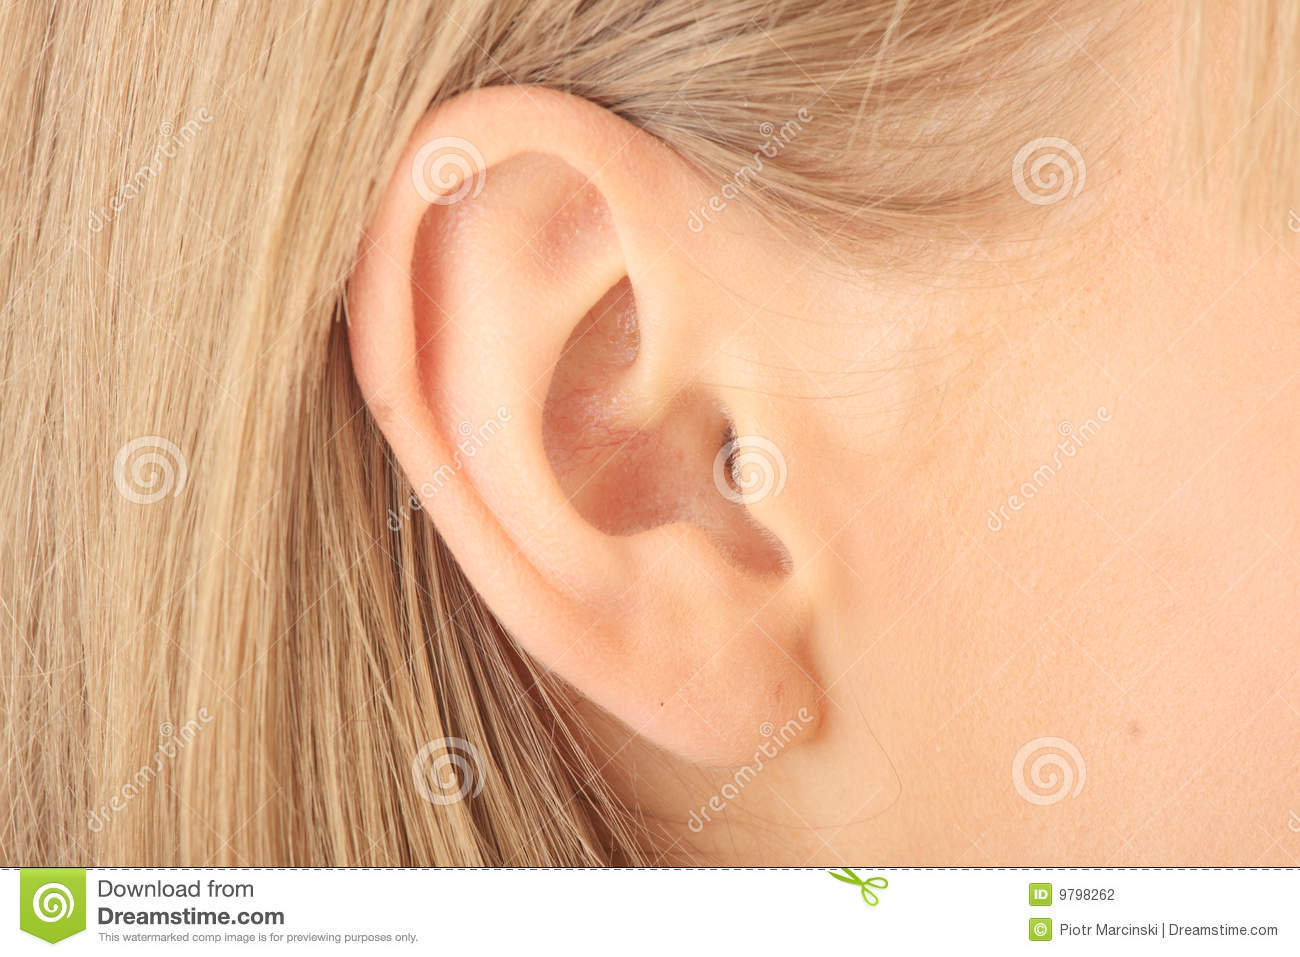 Closeup picture of blond girl ear